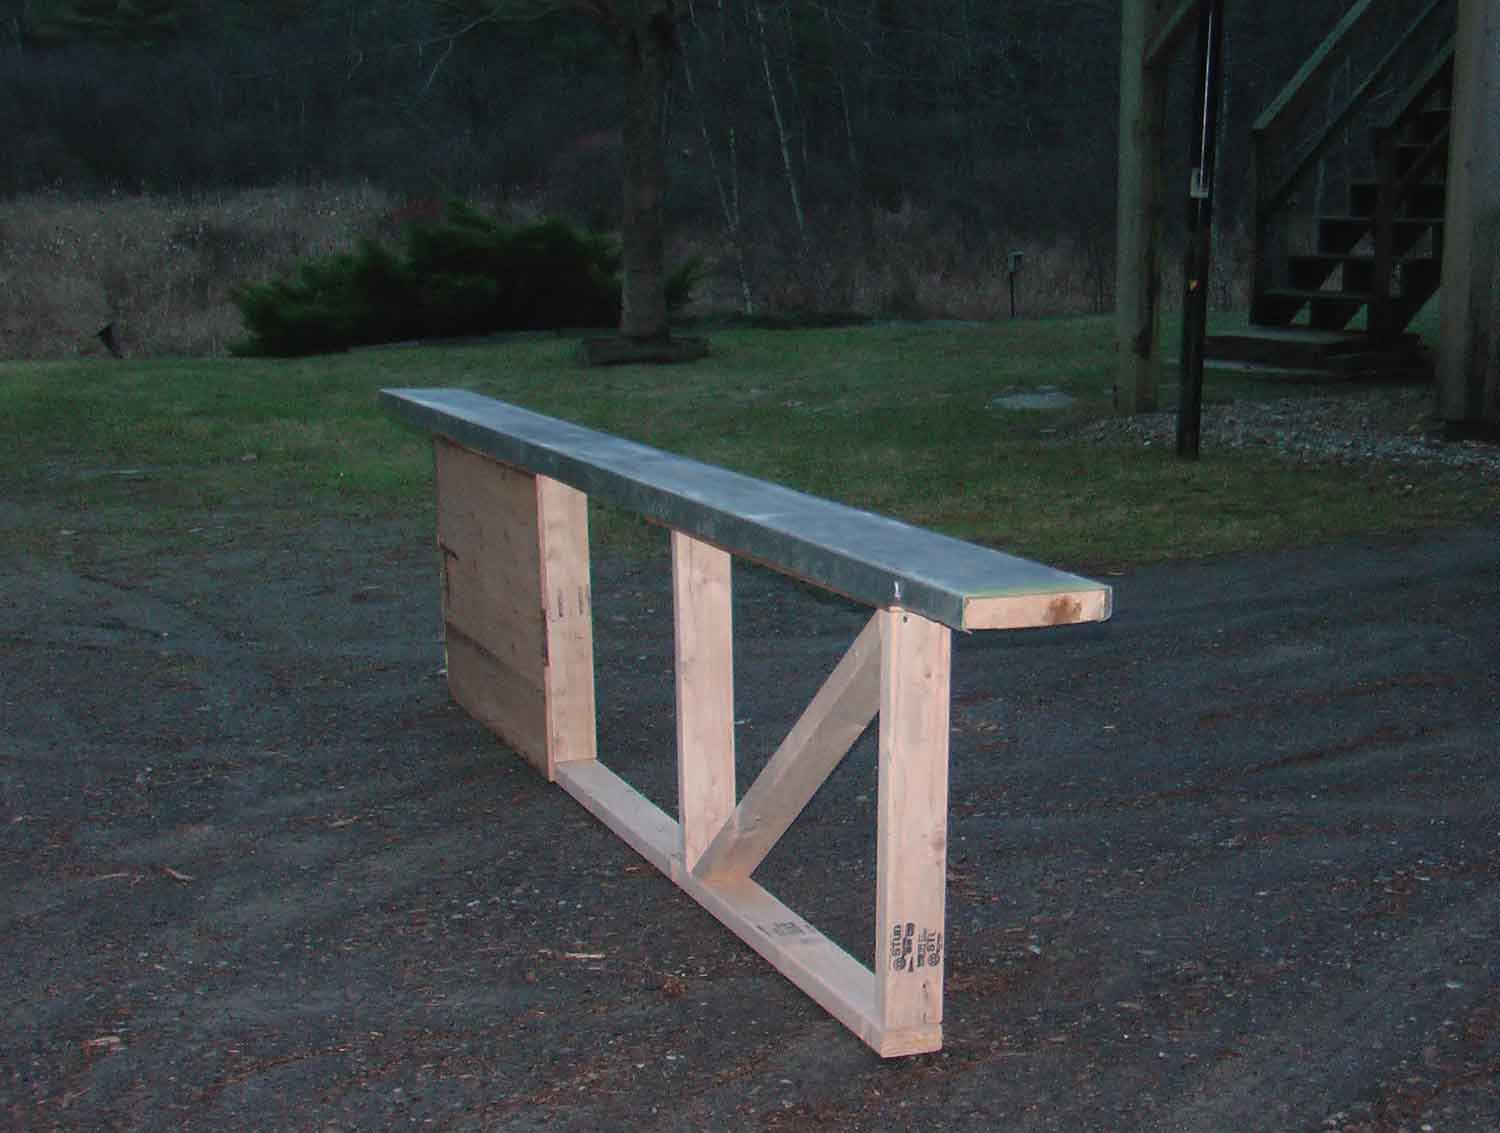 """Metal rail I just built - 10', 7"""" wide, a little over 2' off the ground"""